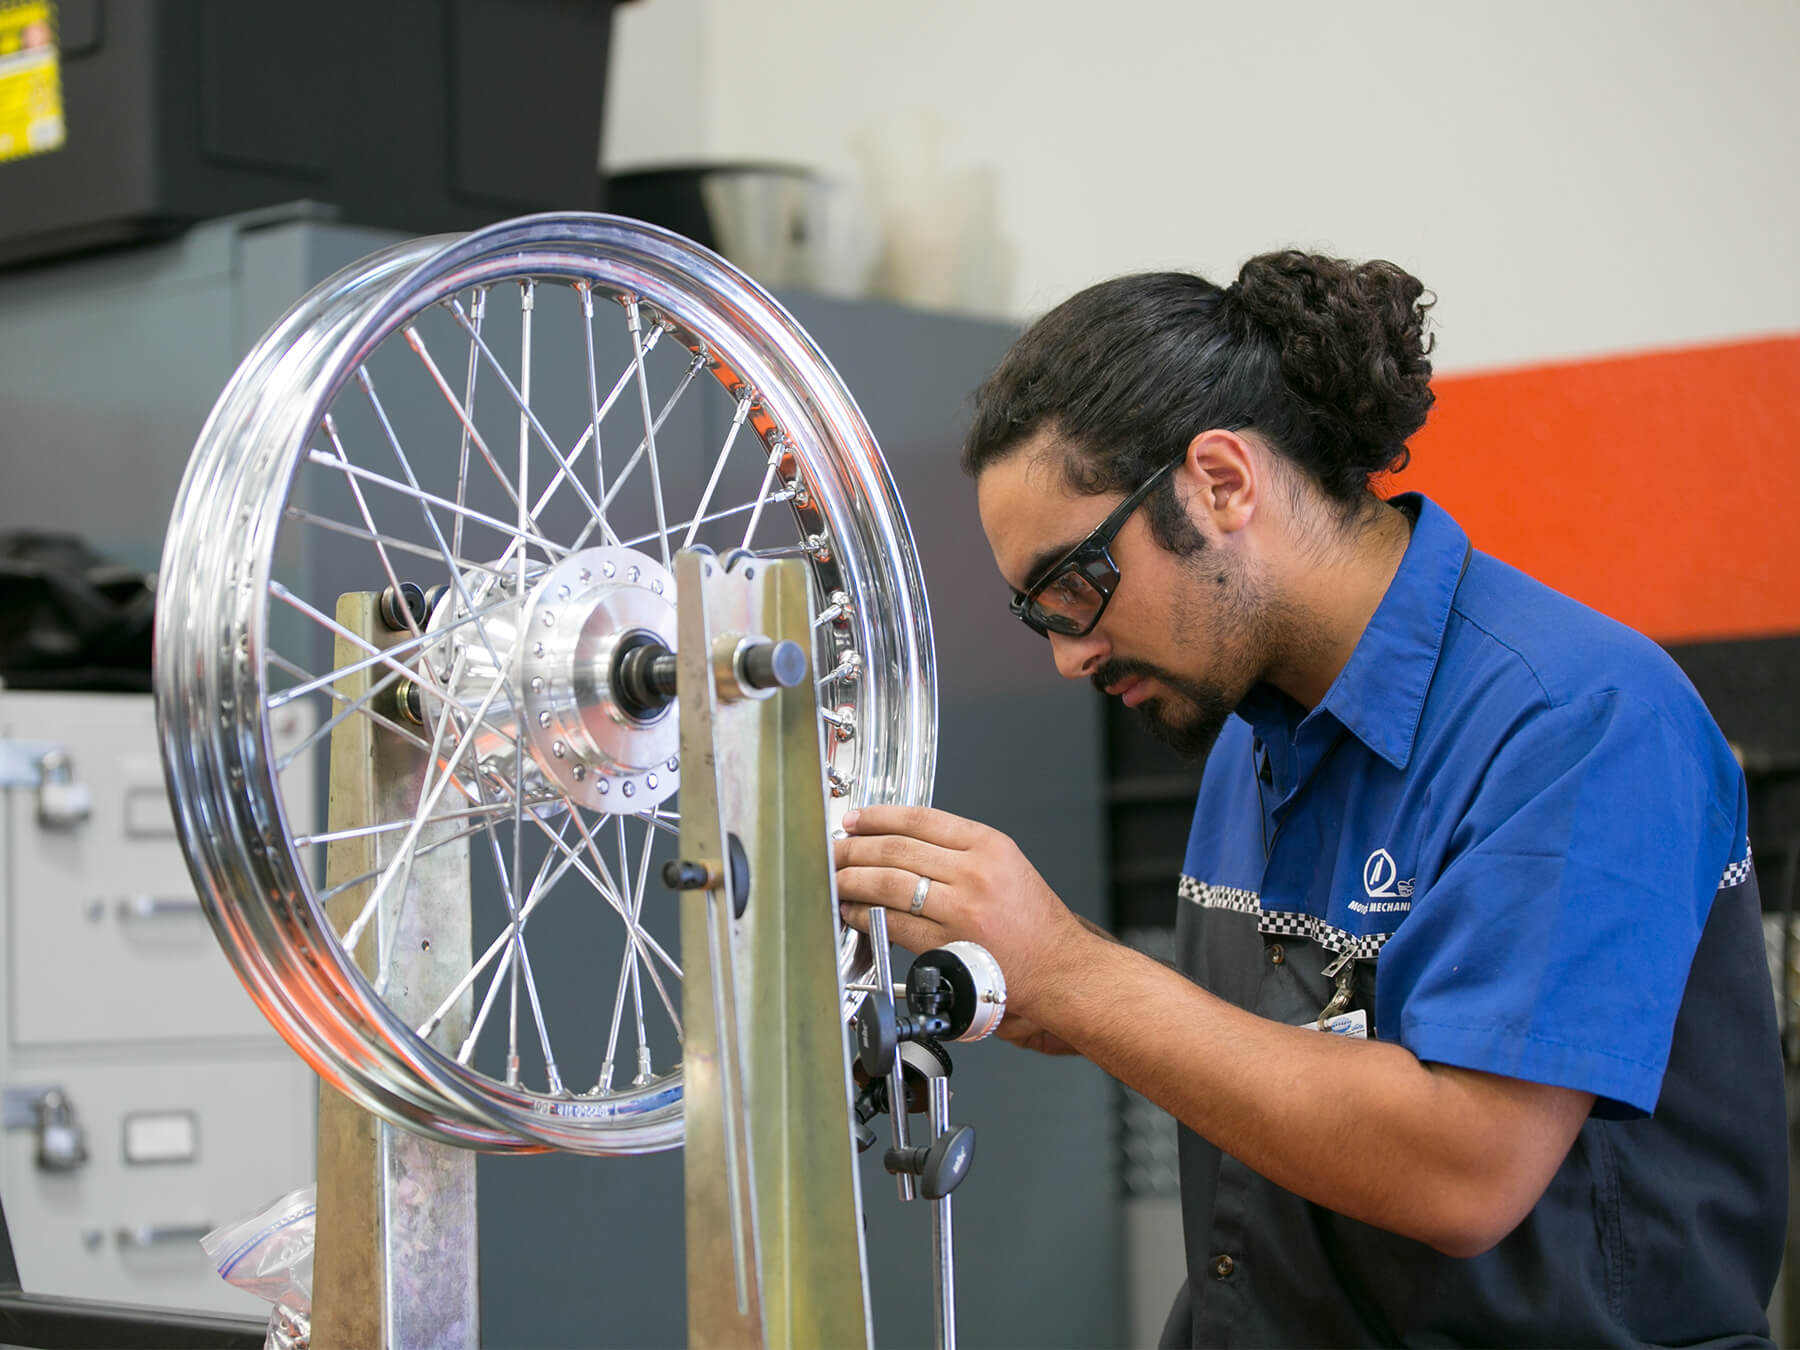 MMI student working on a tire rim